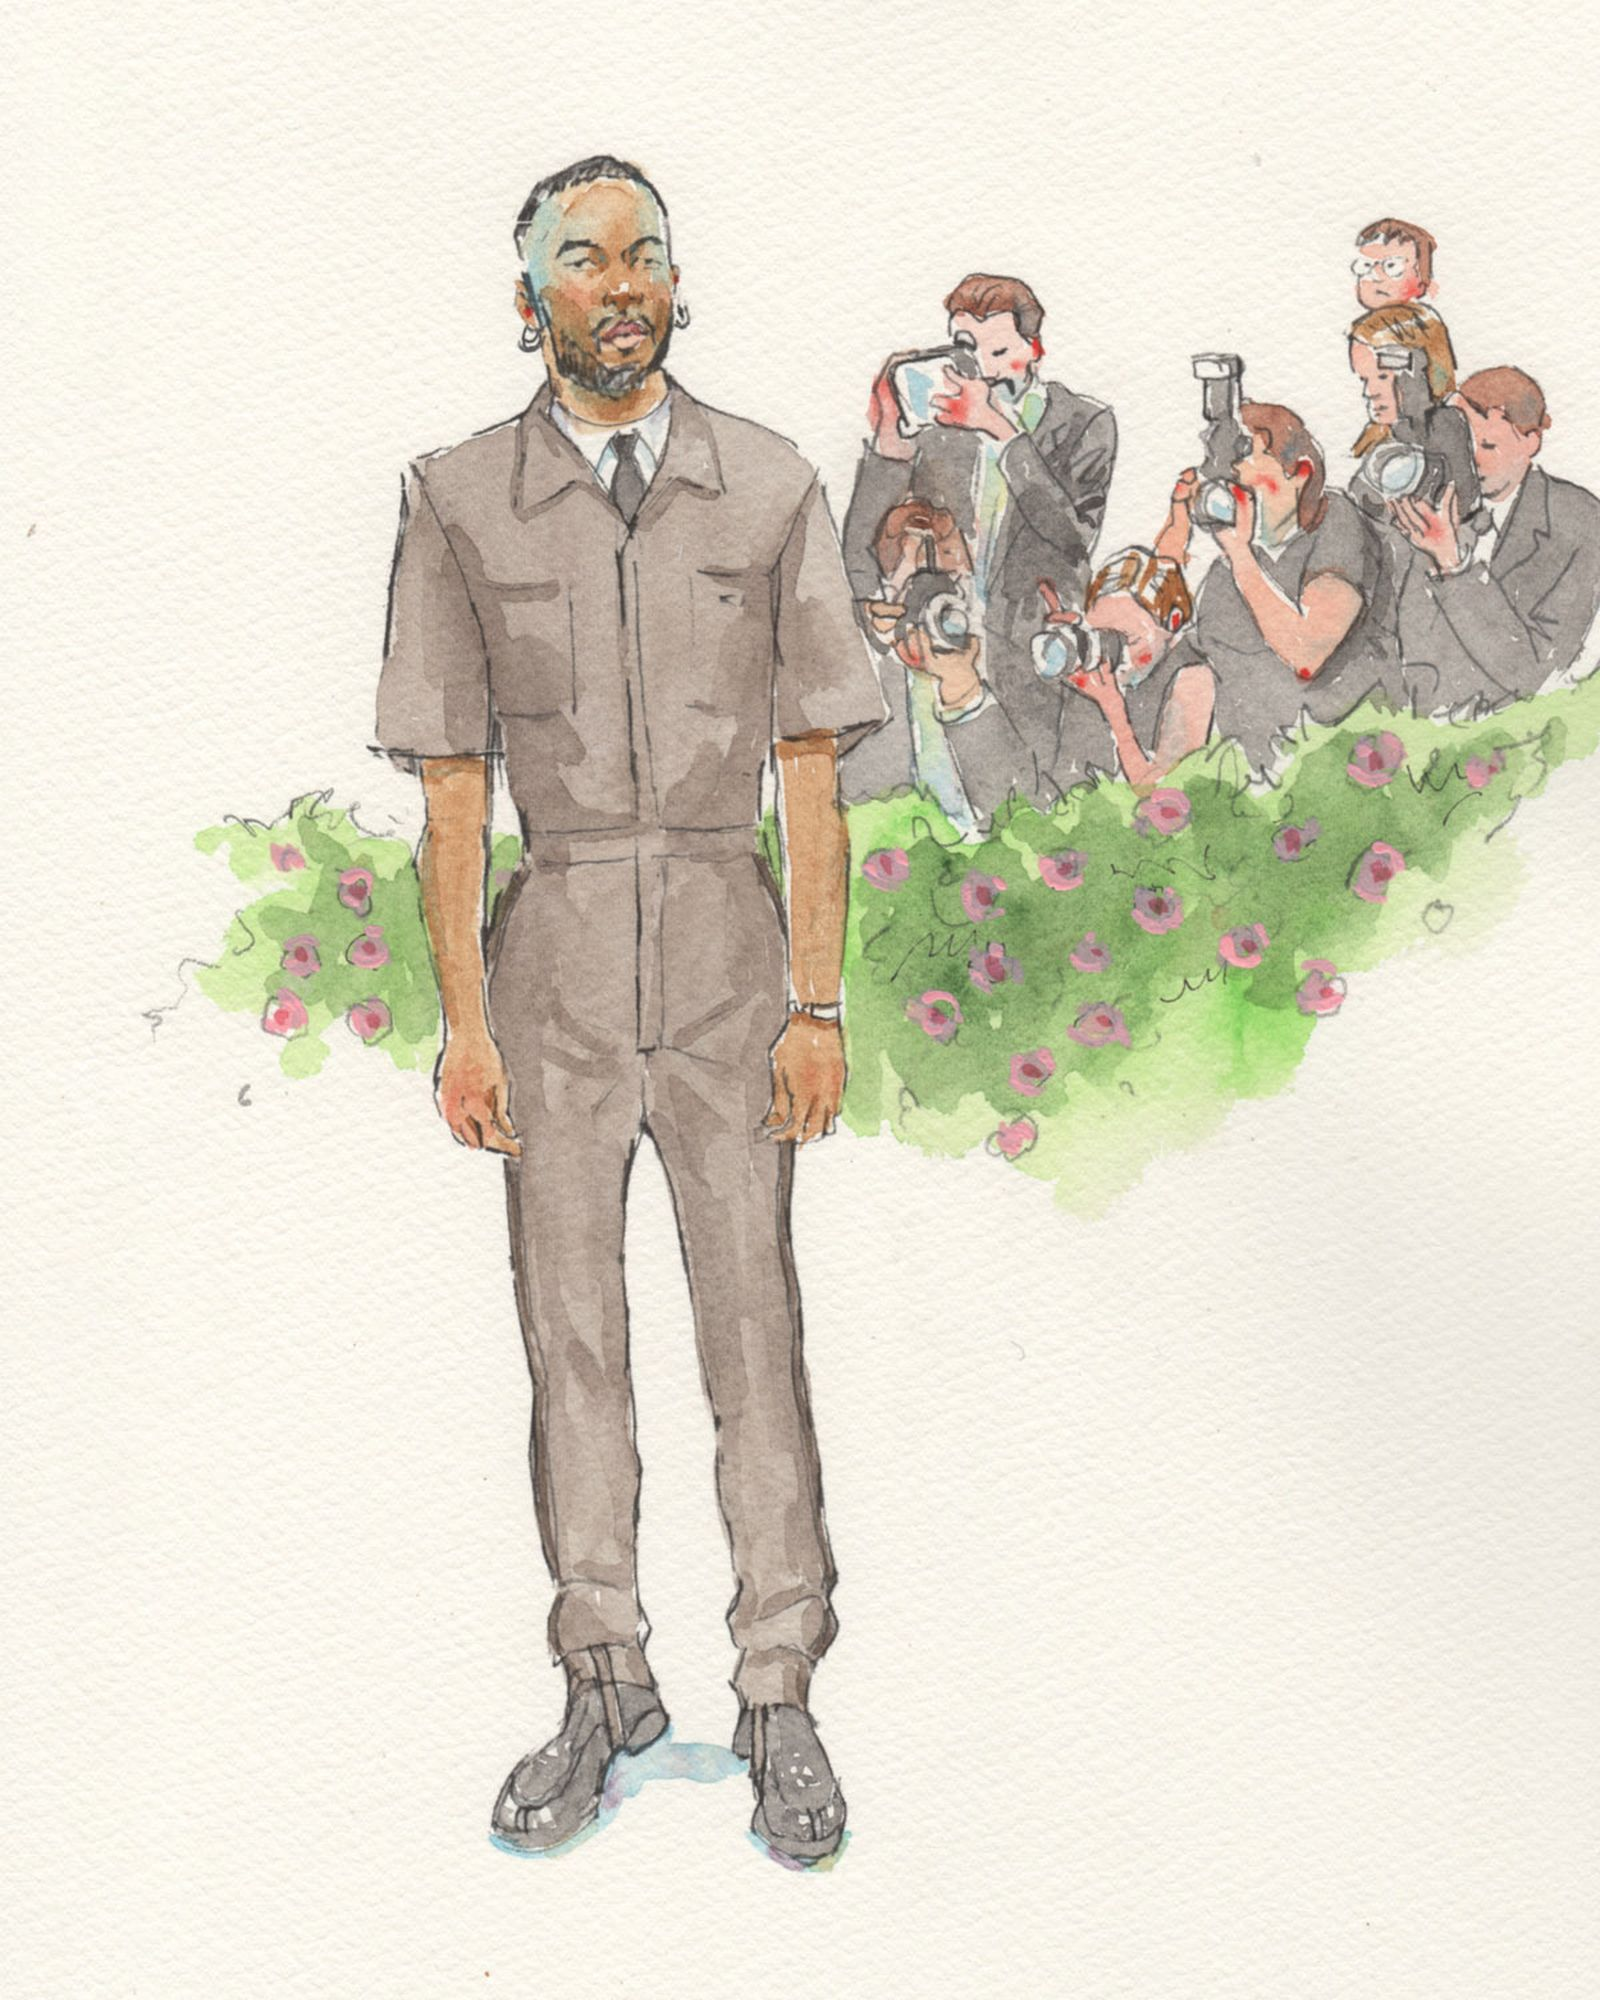 courtroom-sketch-artist-draws-fantasty-met-gala-fits-never-happened-Frank-Ocean